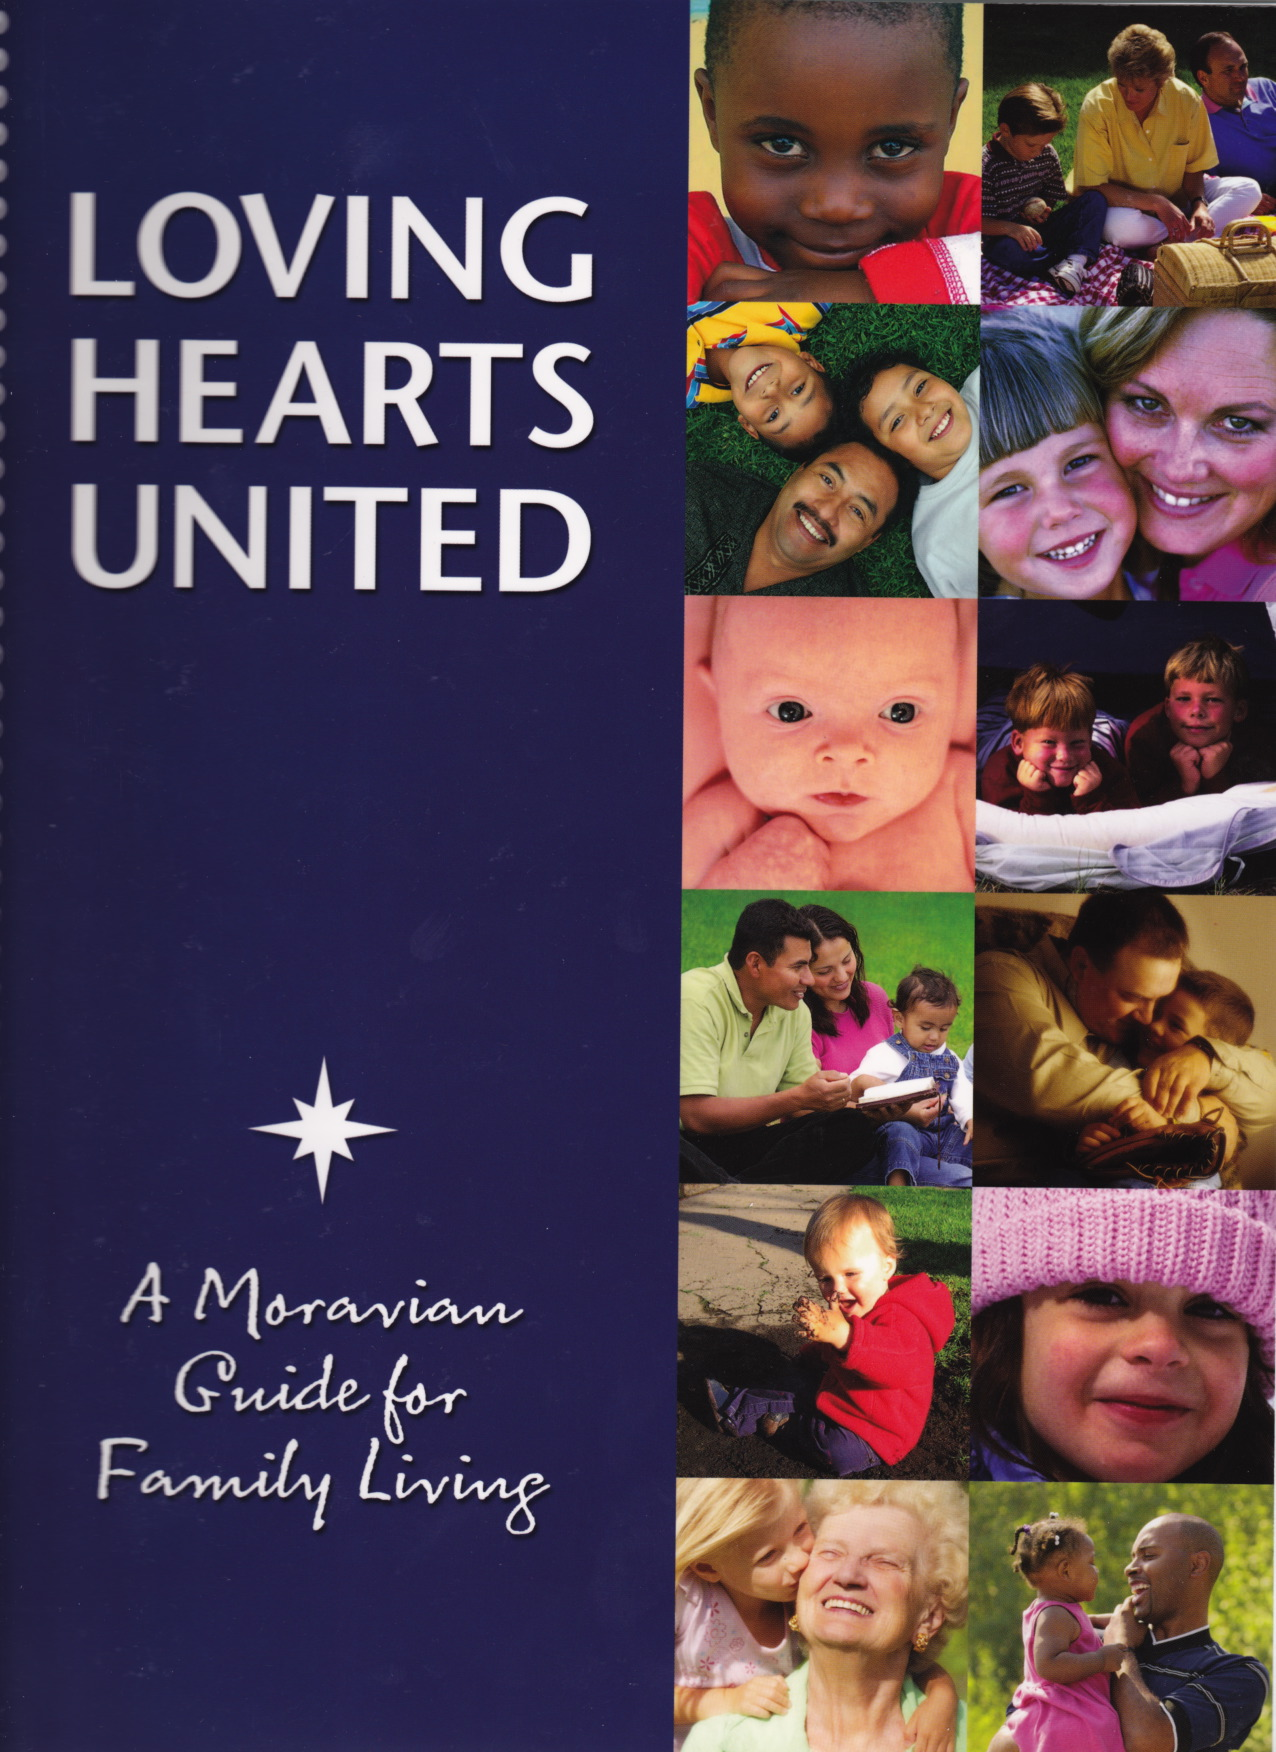 Loving Hearts United - A Moravian Guide for Family Living